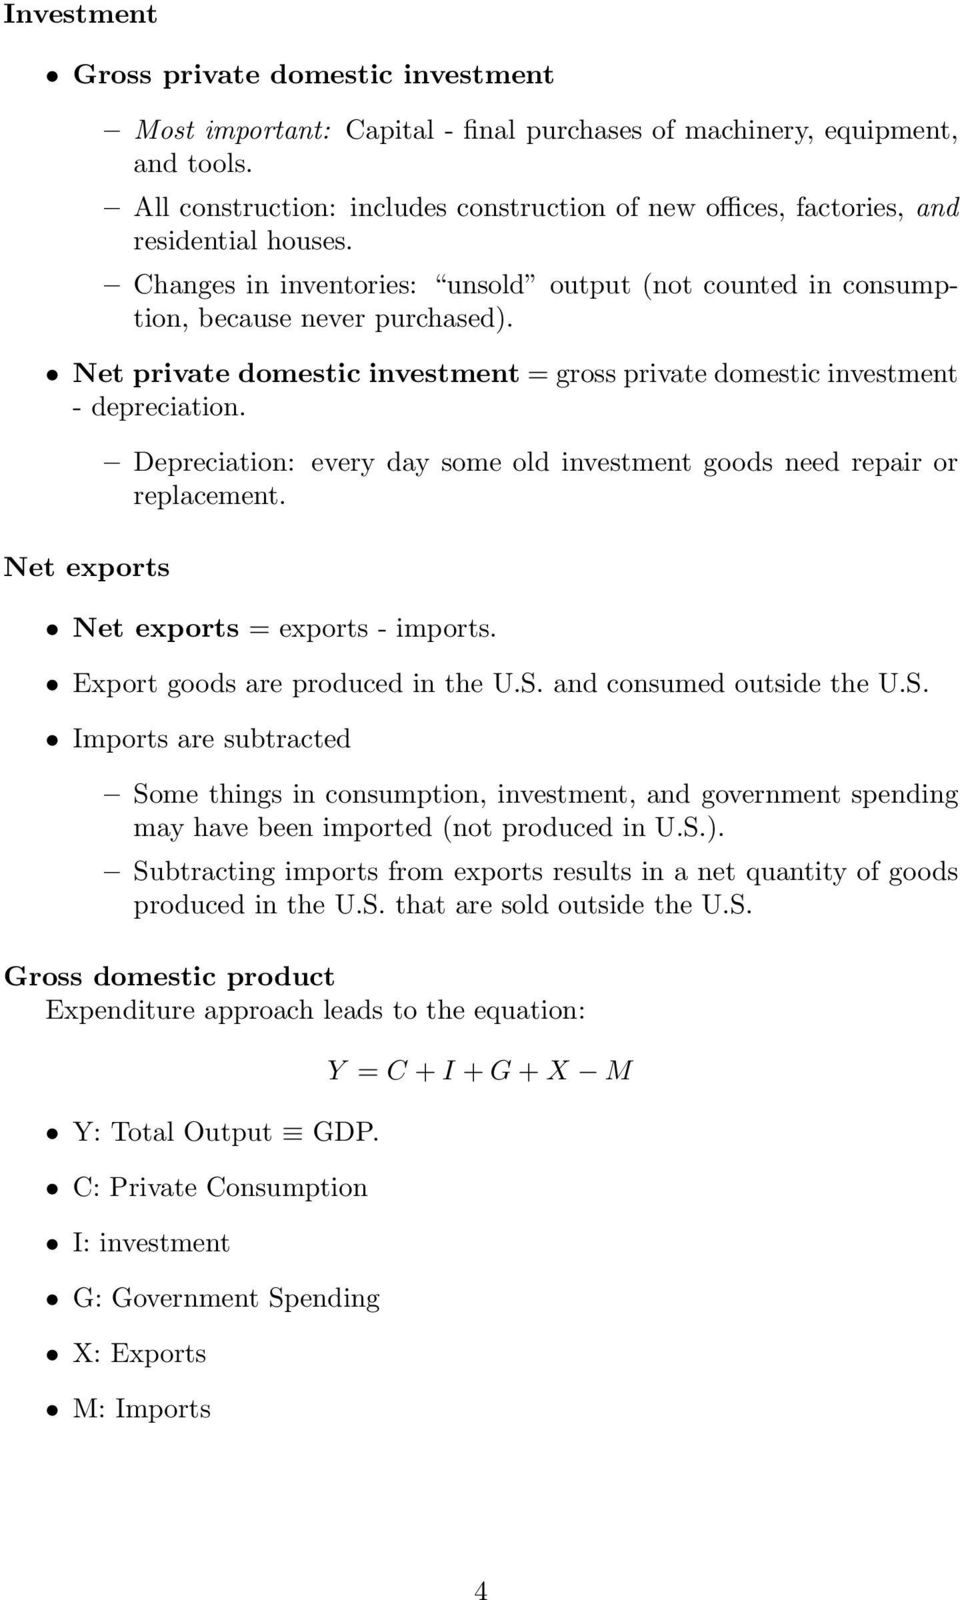 Net private domestic investment = gross private domestic investment - depreciation. Net exports Depreciation: every day some old investment goods need repair or replacement.